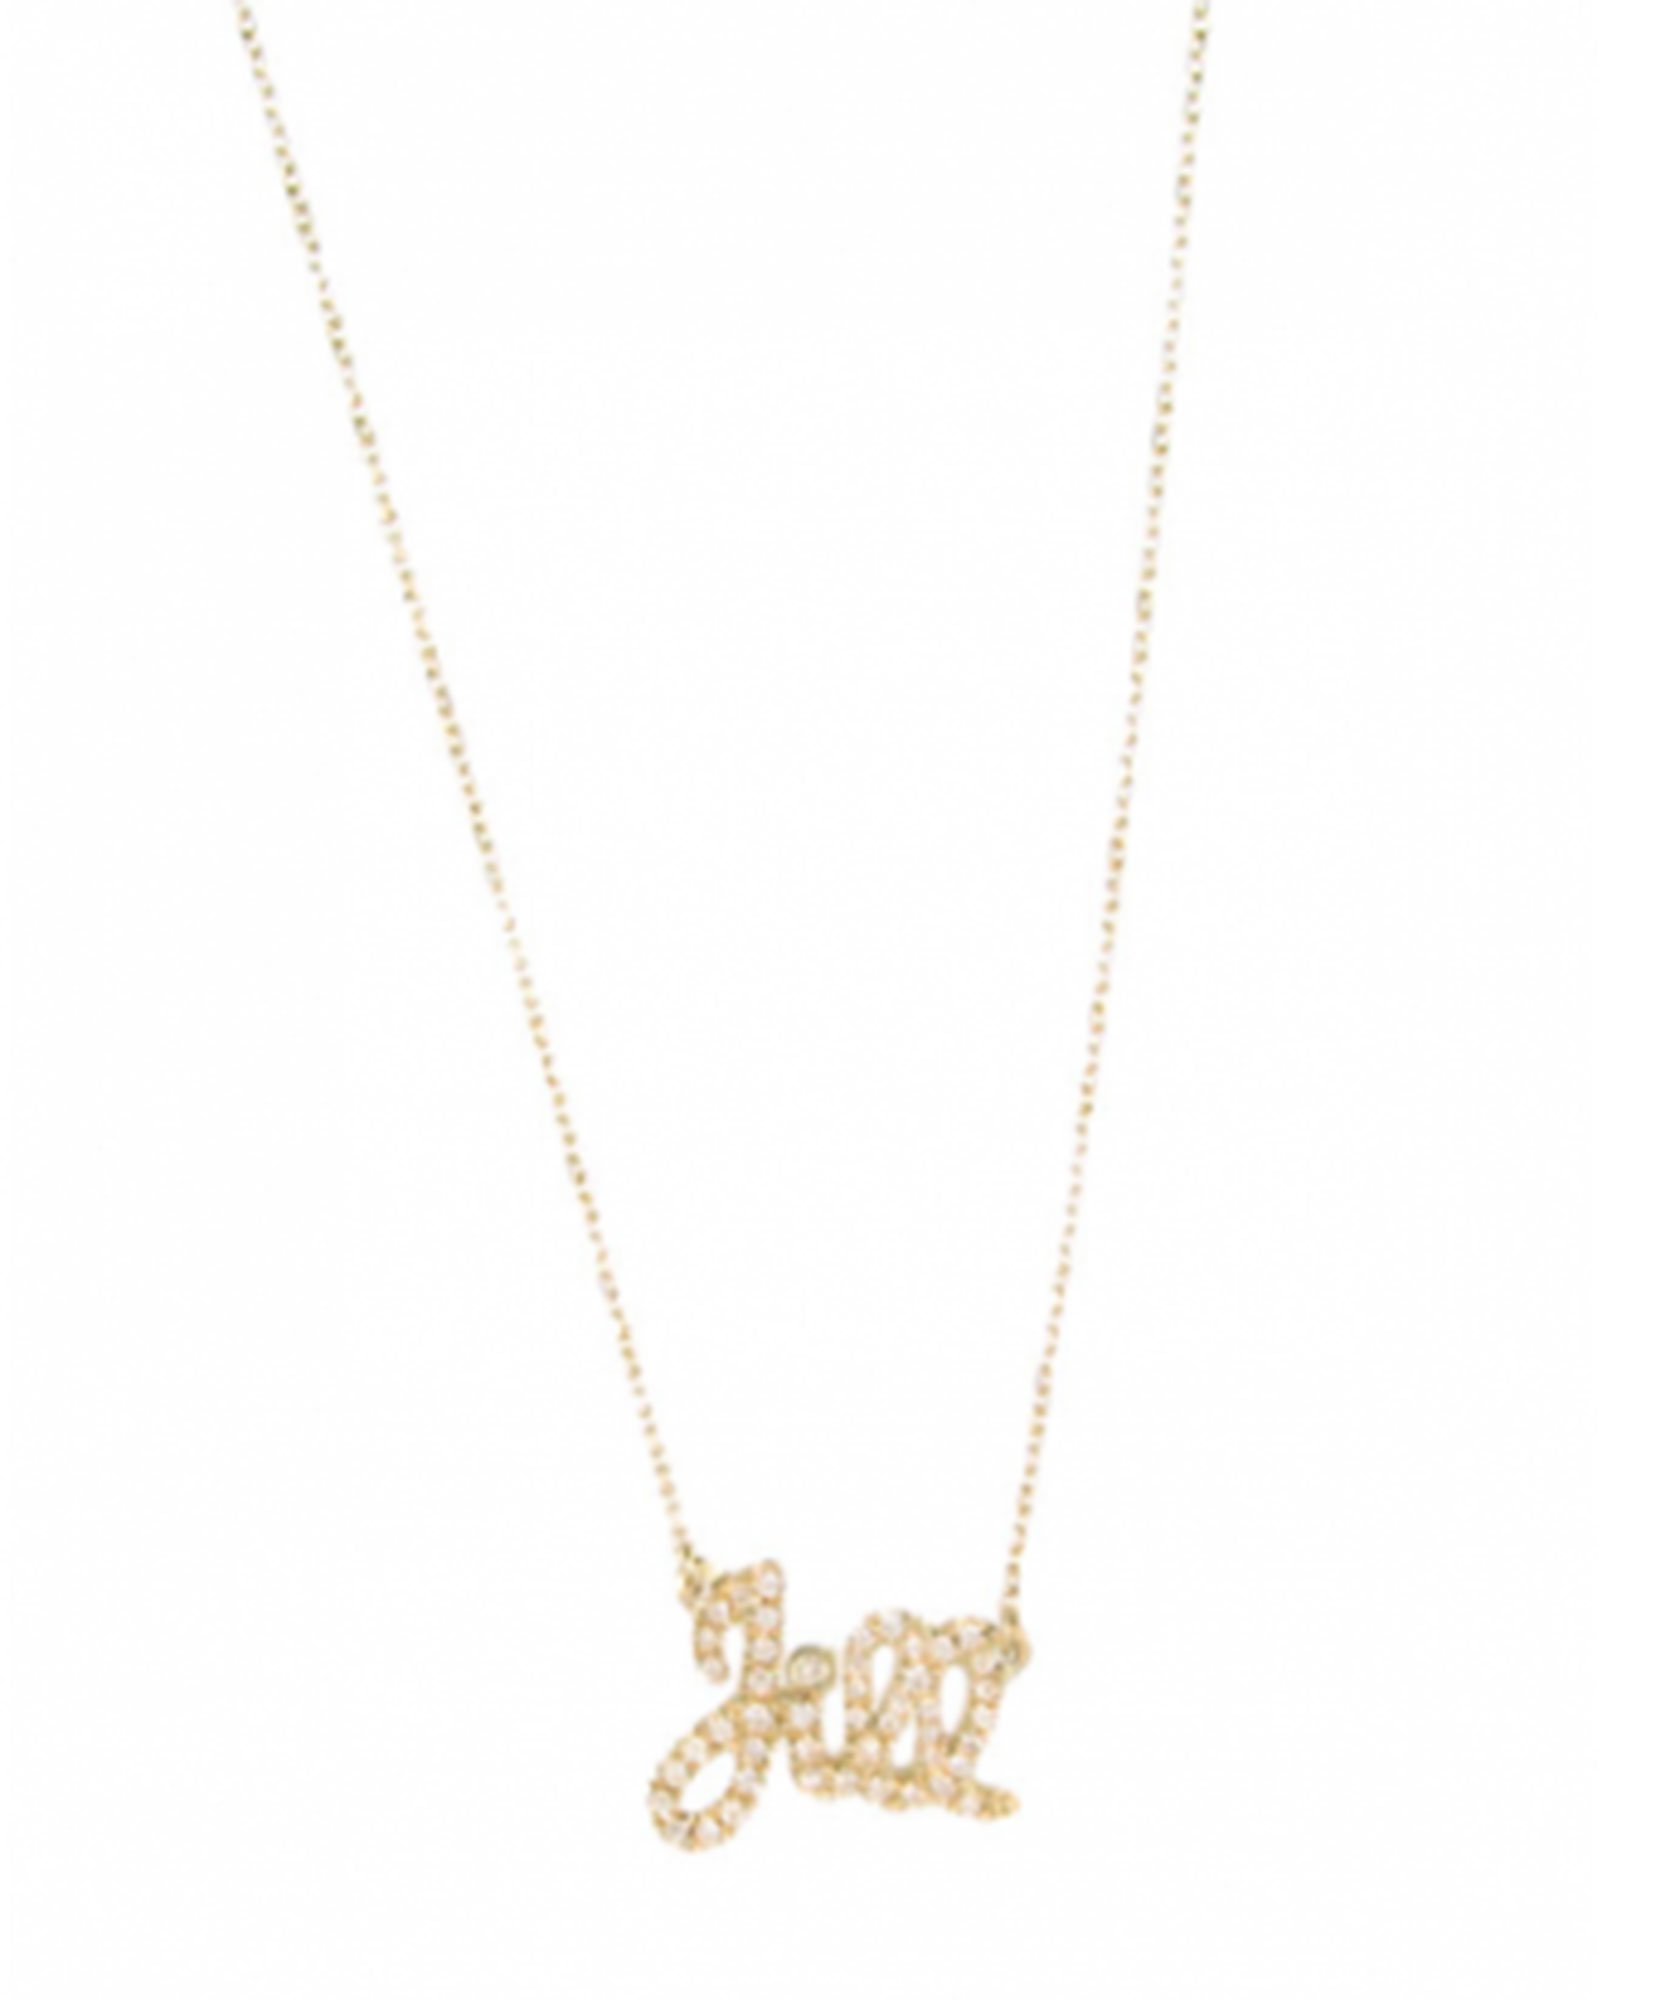 68b1860756ce1 Nameplate Necklaces Inspired by Hailey Baldwin Bieber: Shop